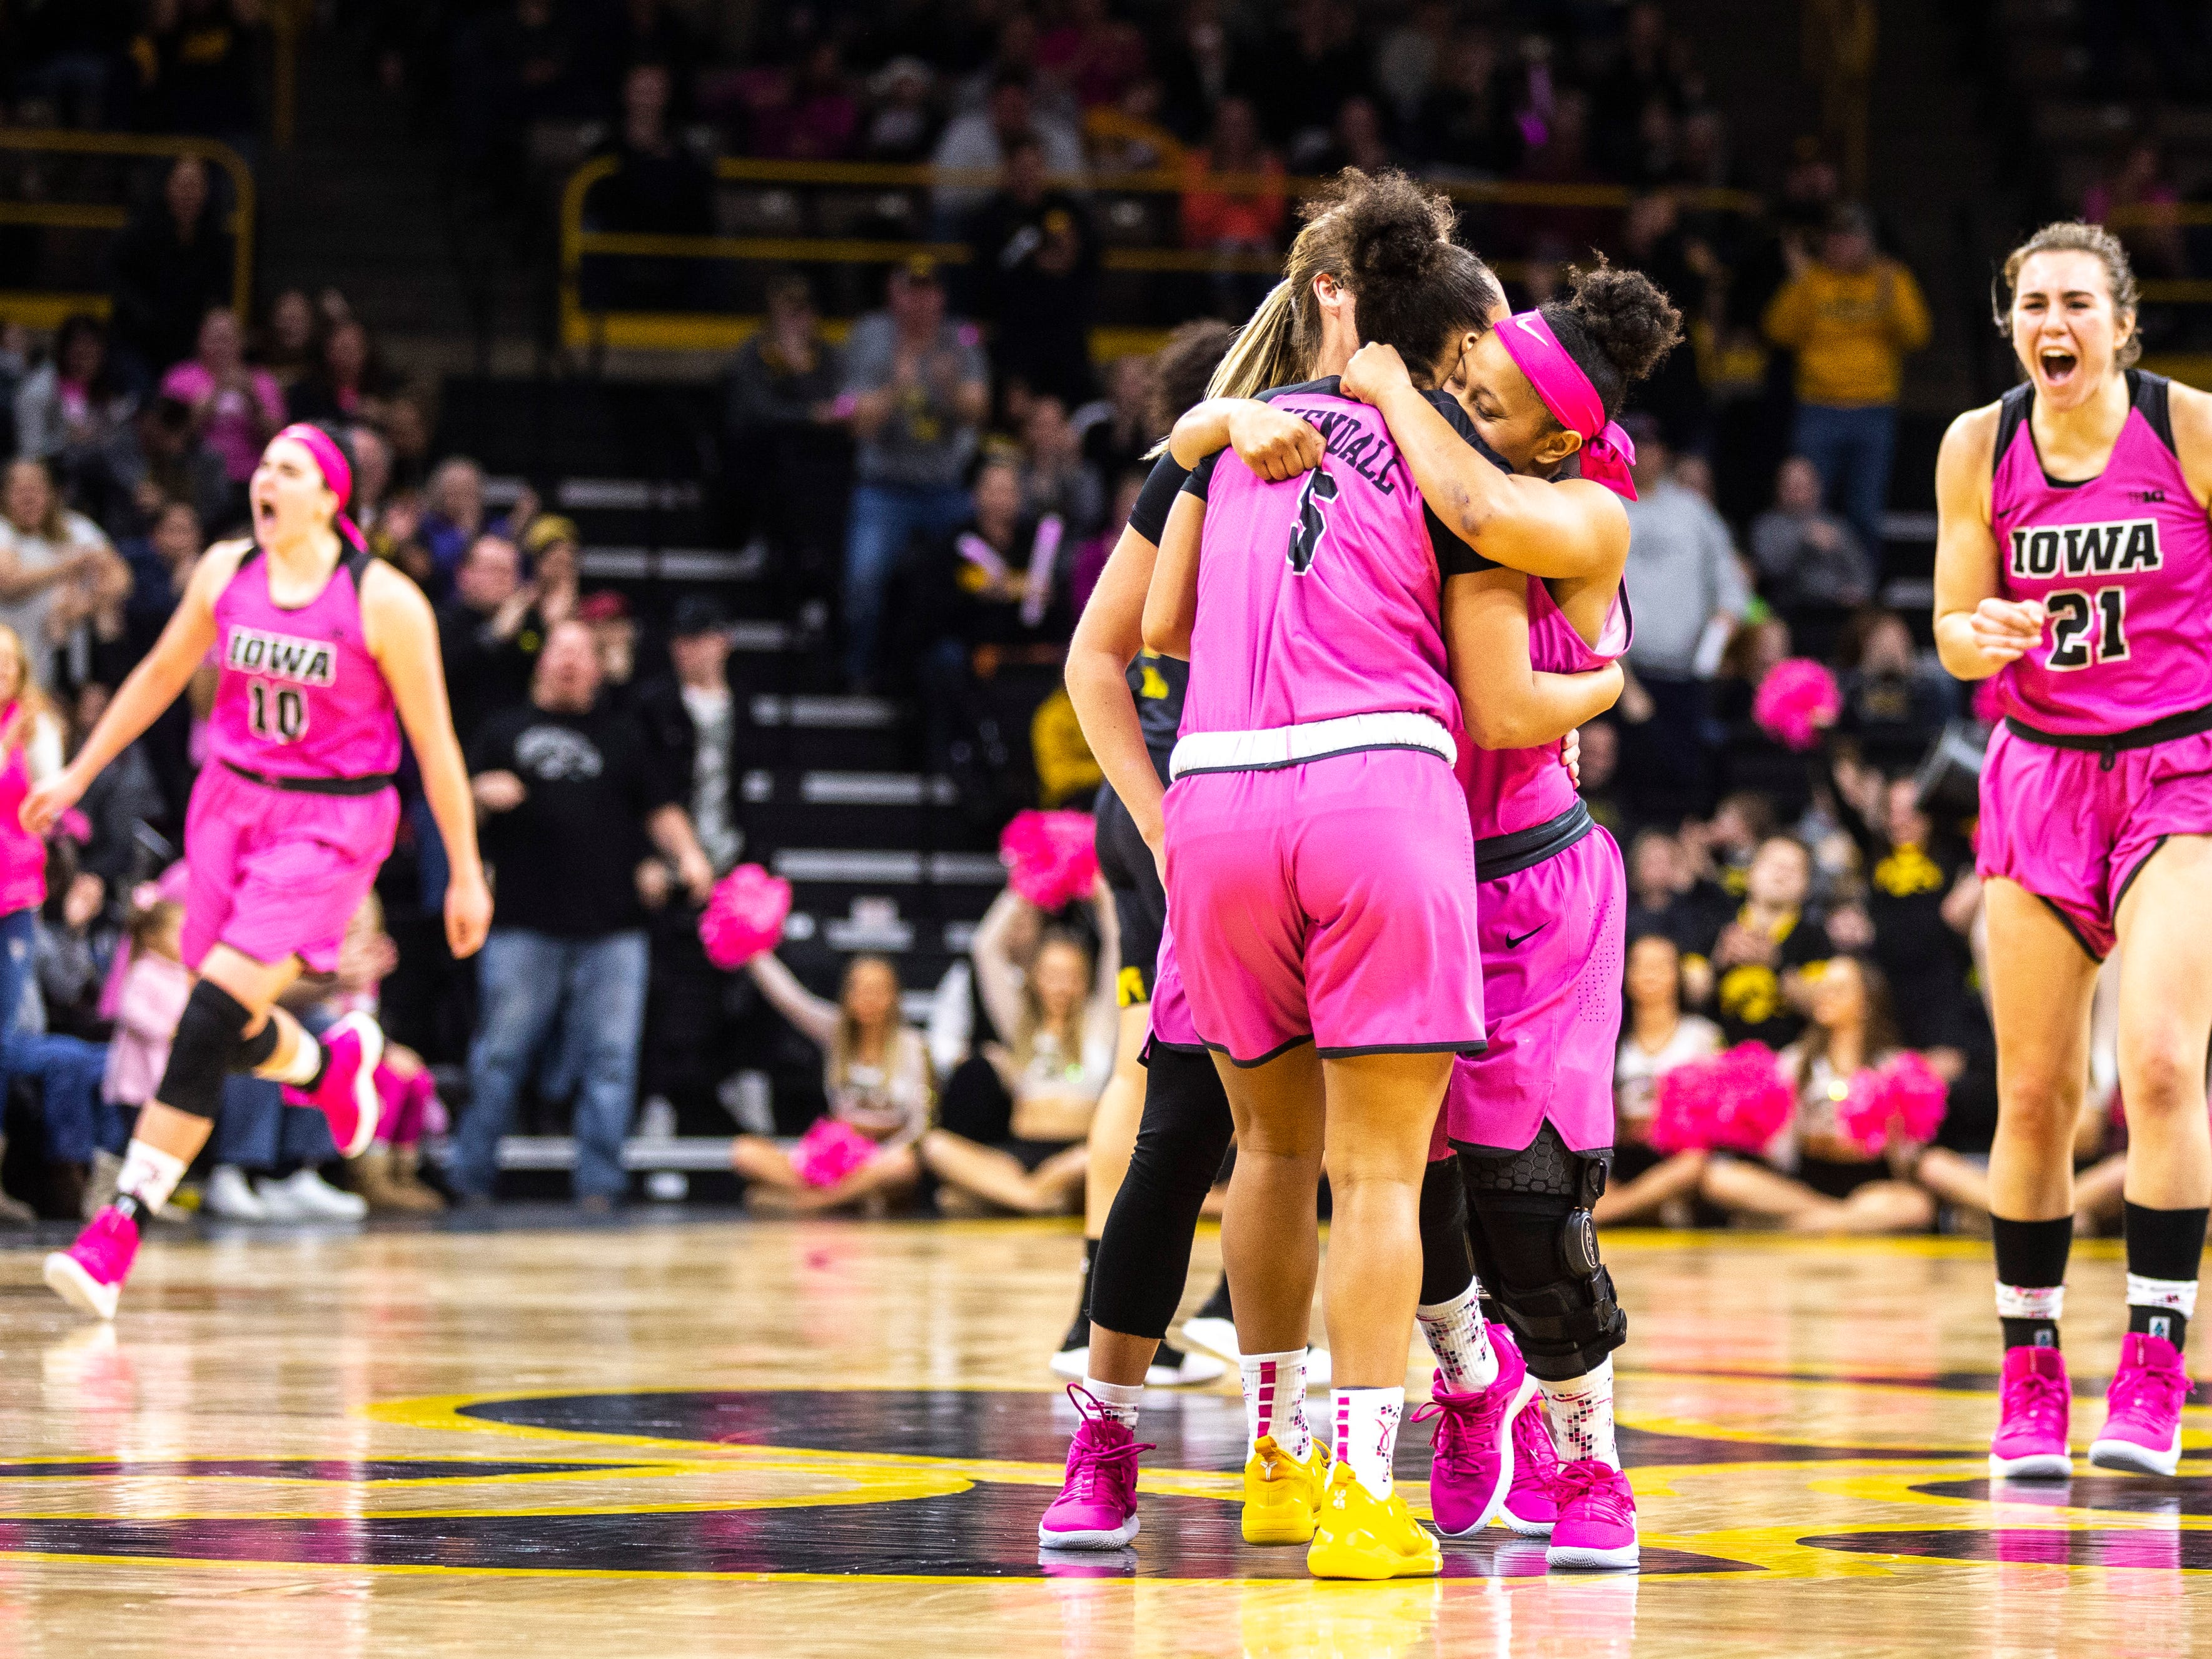 Iowa guard Alexis Sevillian (5) is embraced by guard Tania Davis after making a 3-point basket while center Megan Gustafson (10) and forward Hannah Stewart (21) celebrate in the background during a NCAA Big Ten Conference women's basketball game on Sunday, Feb. 17, 2019 at Carver-Hawkeye Arena in Iowa City, Iowa.